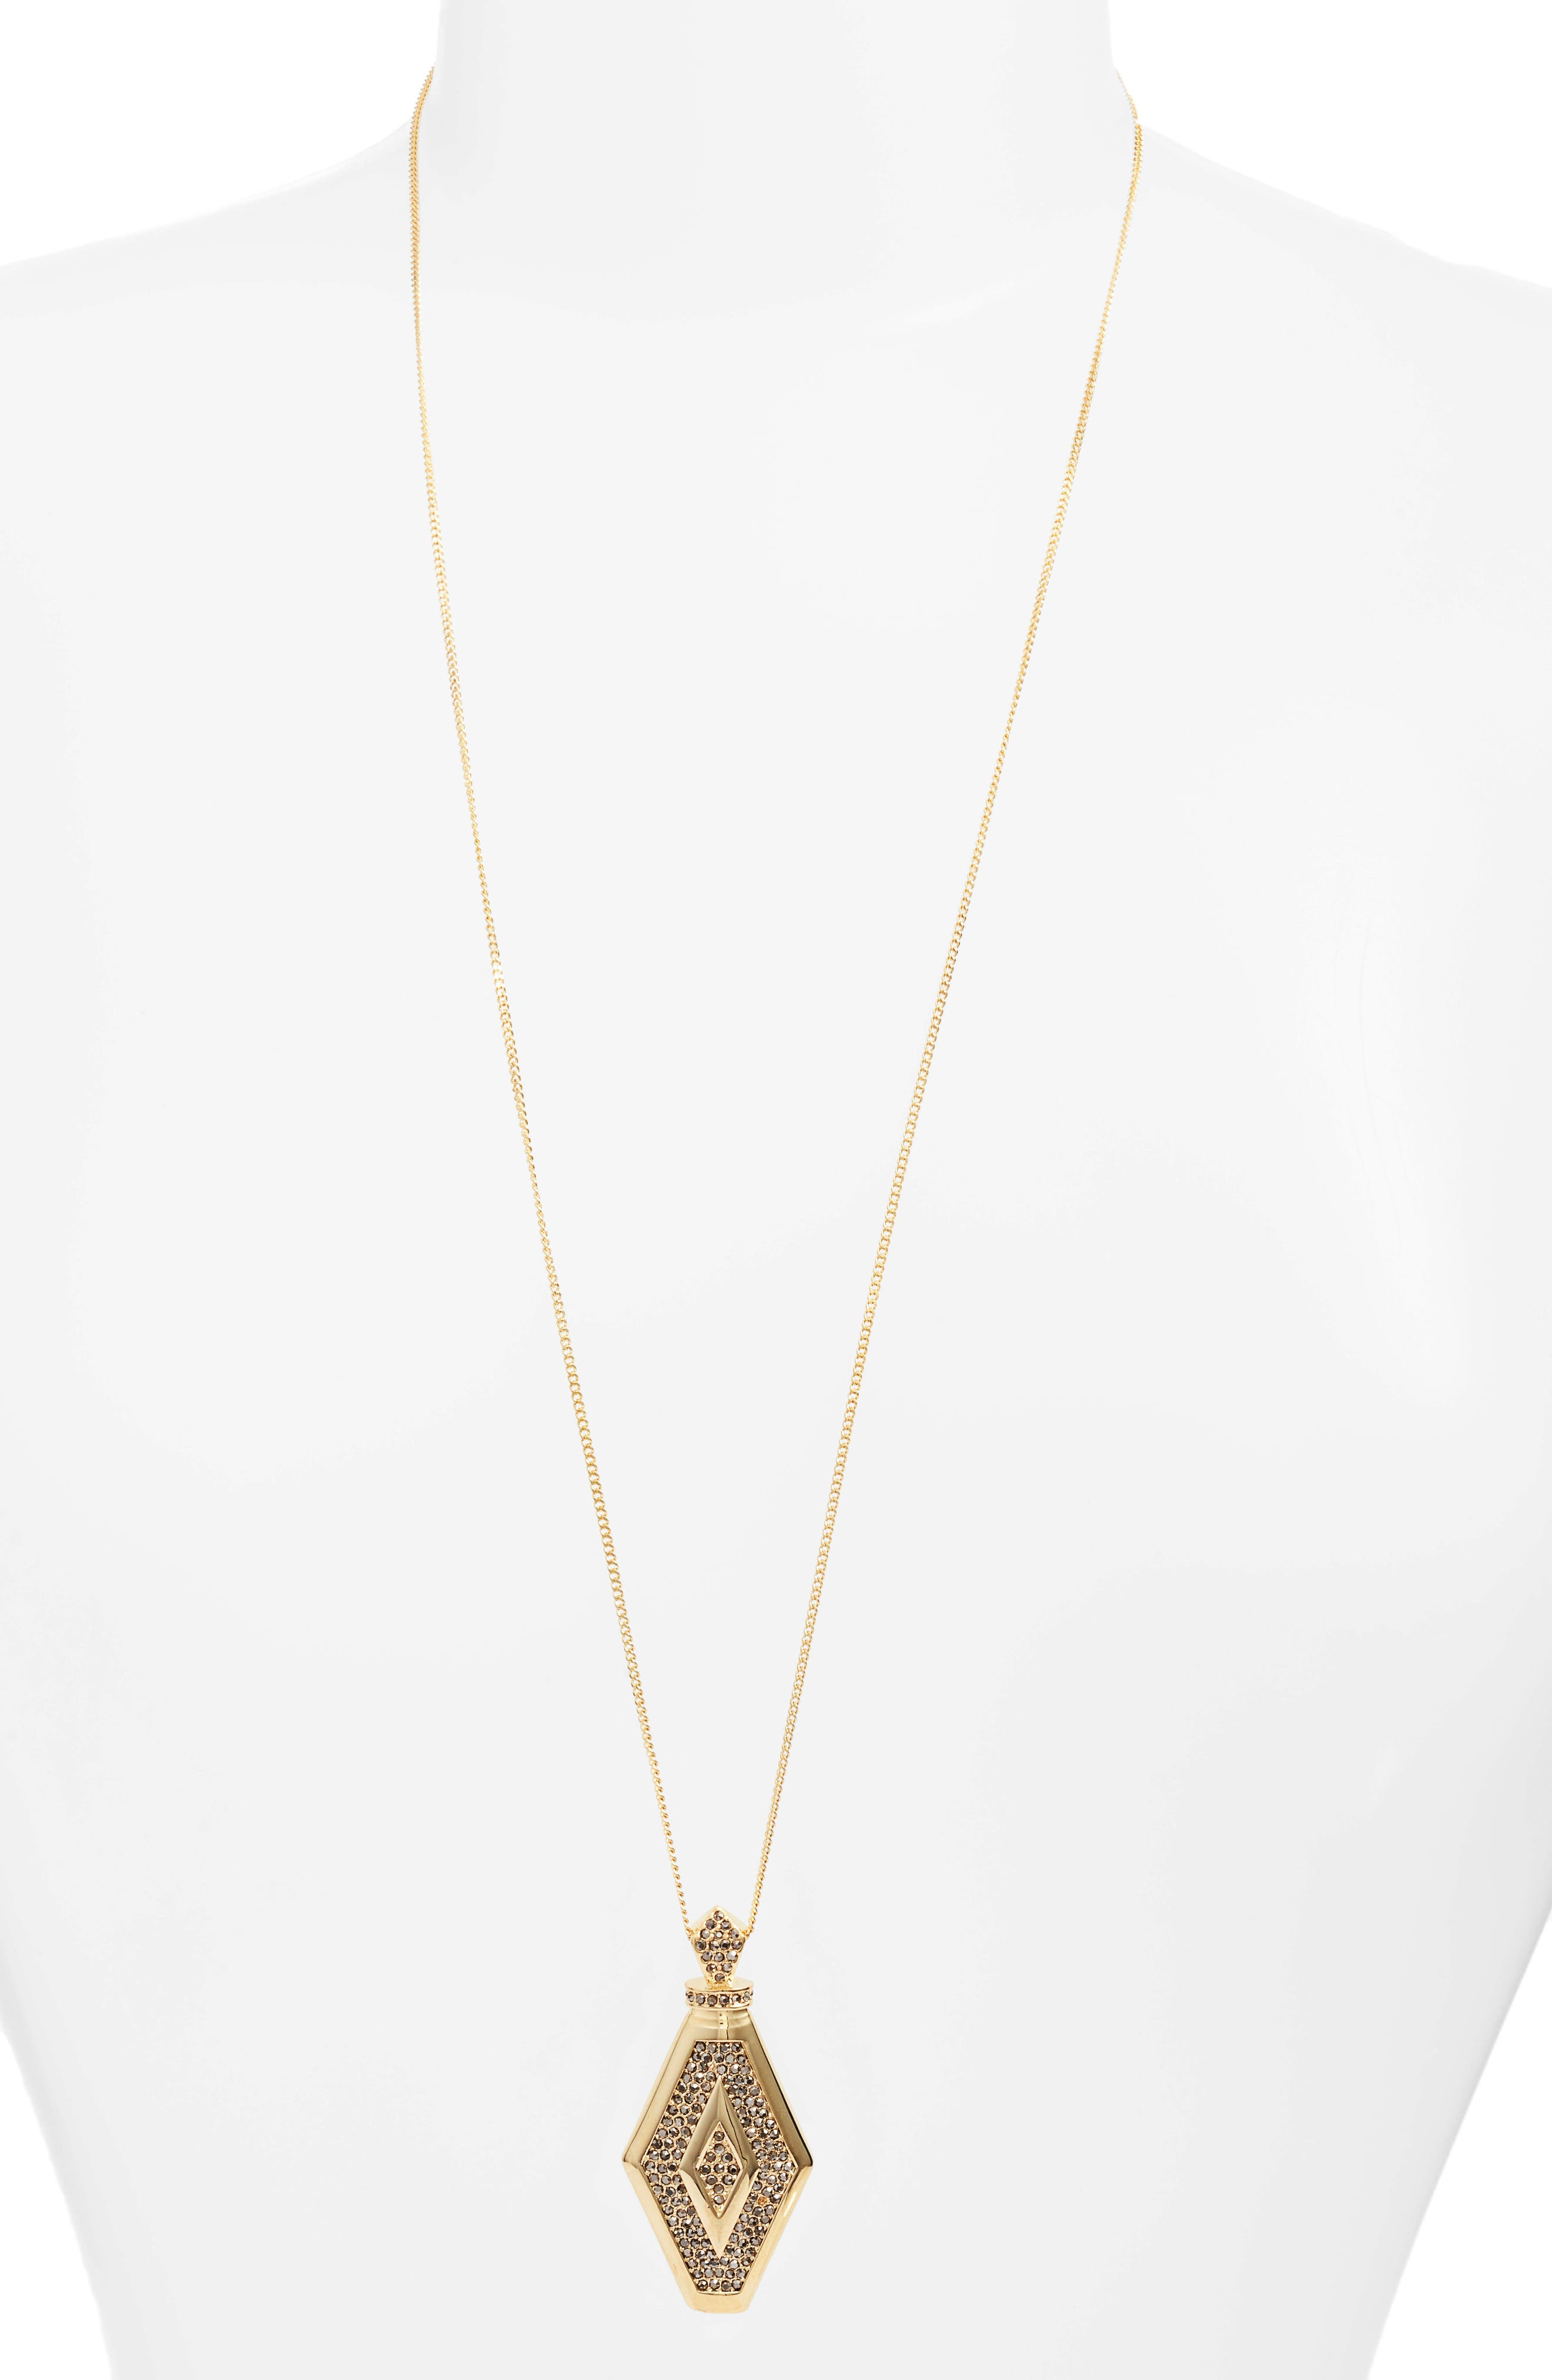 Alternate Image 1 Selected - Vince Camuto Pavé Crystal Pendant Necklace